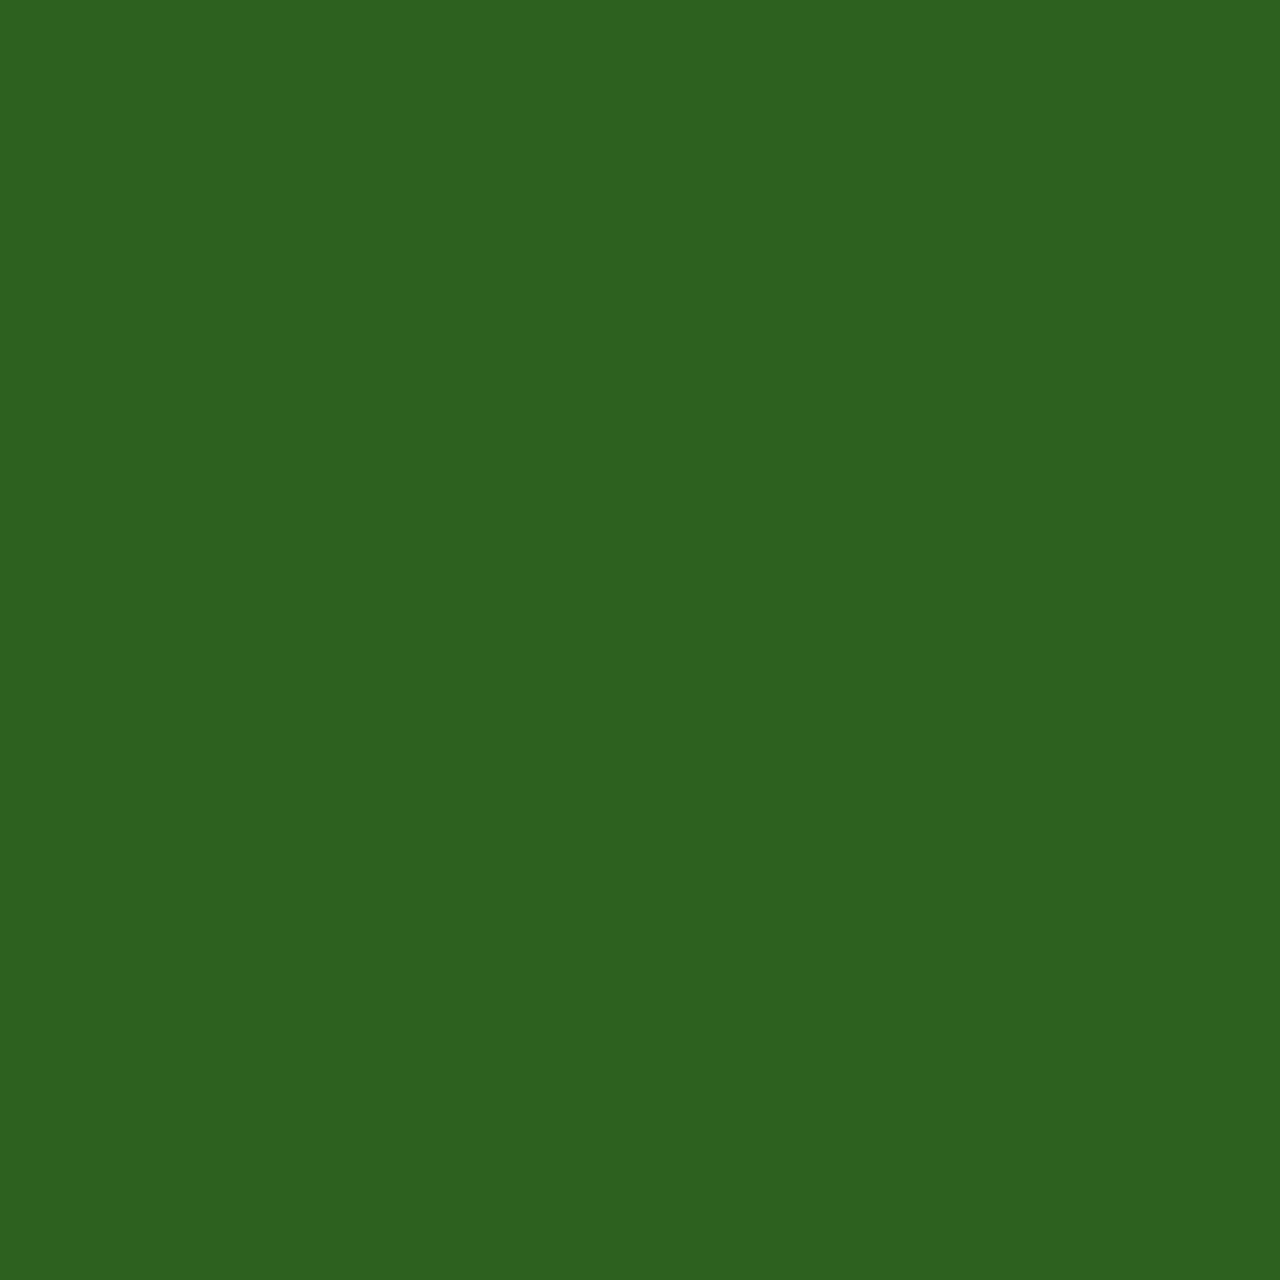 Rosco Calcolor Sheet #4490: 90 Green, Gels